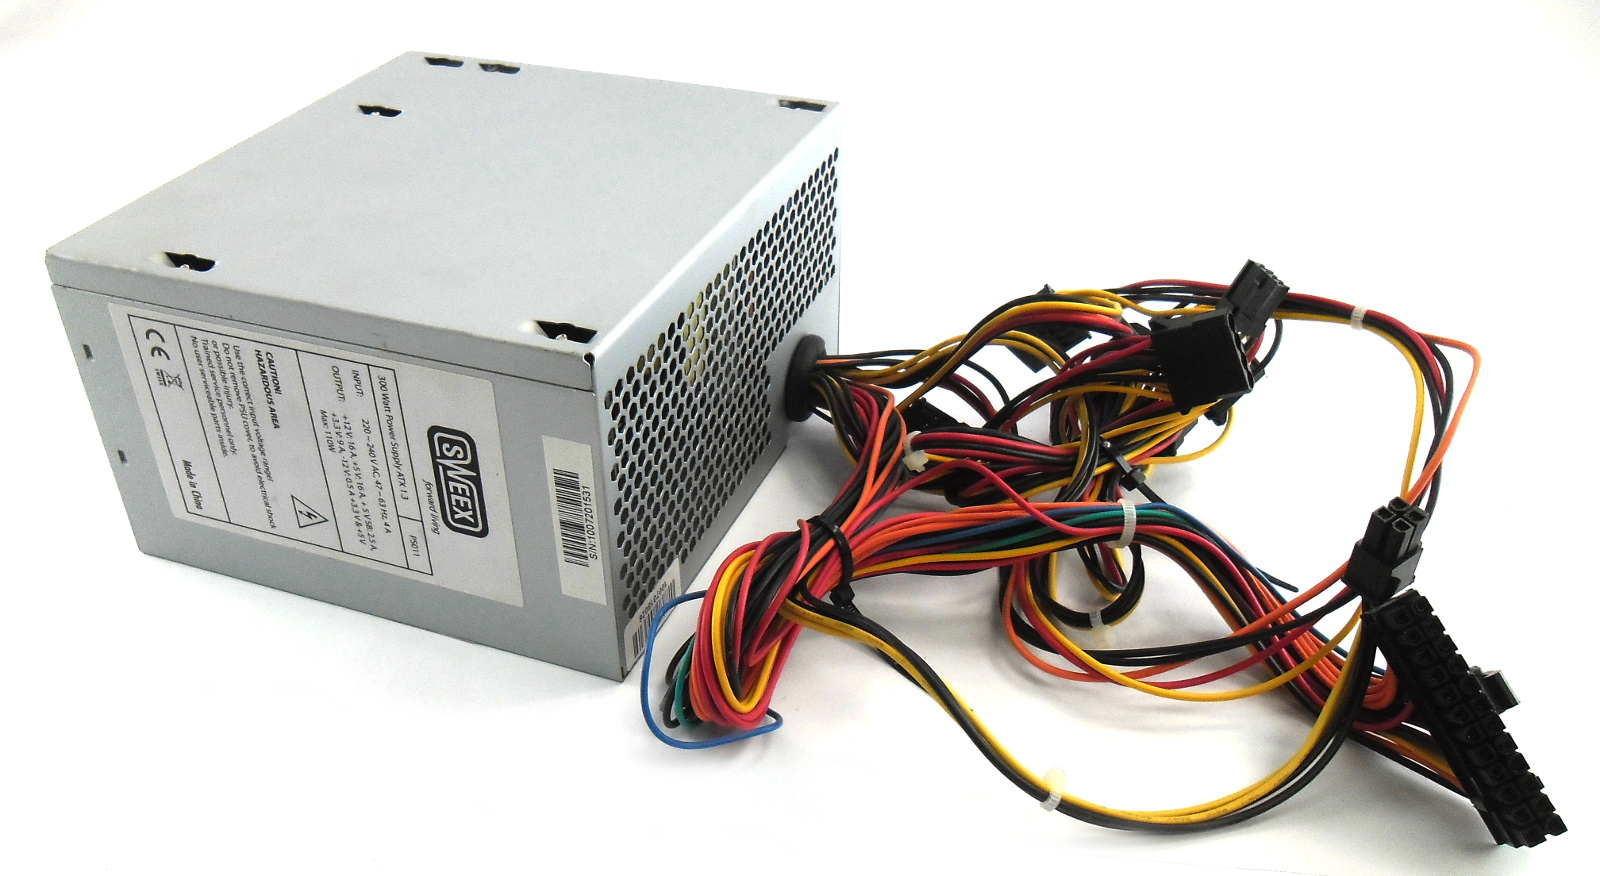 PS011 Sweex 300W Power Supply Unit ATX 1.3